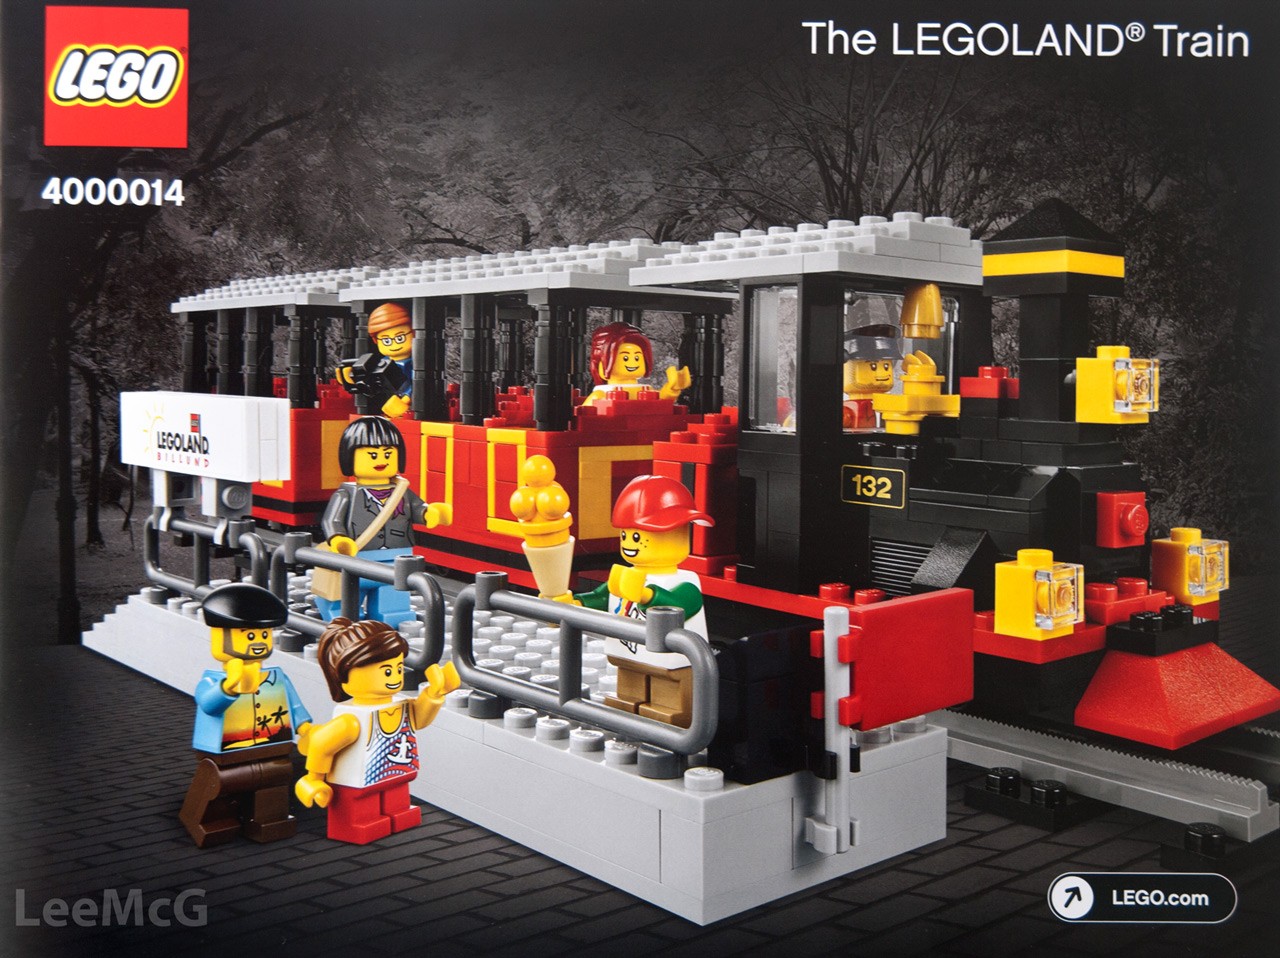 2014 Inside Tour set: Legoland Train | New Elementary, a LEGO® blog